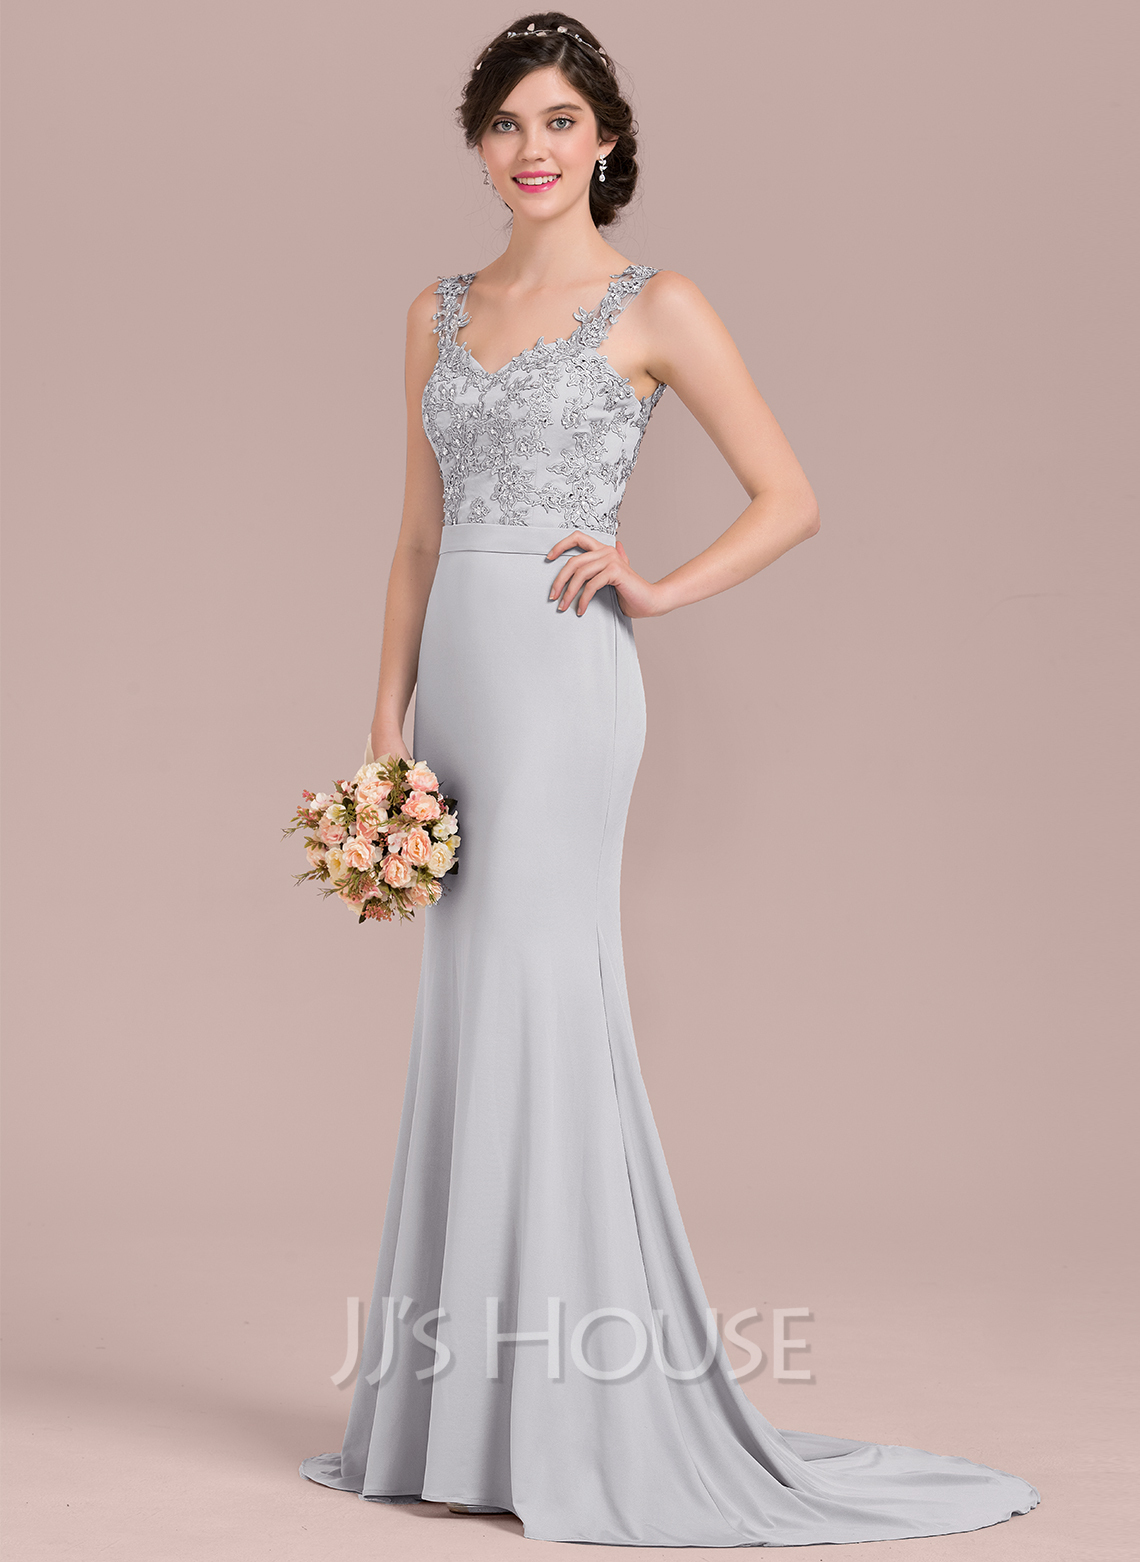 097d9fdac1 Trumpet Mermaid Sweetheart Sweep Train Lace Jersey Evening Dress With  Beading Sequins. Loading zoom